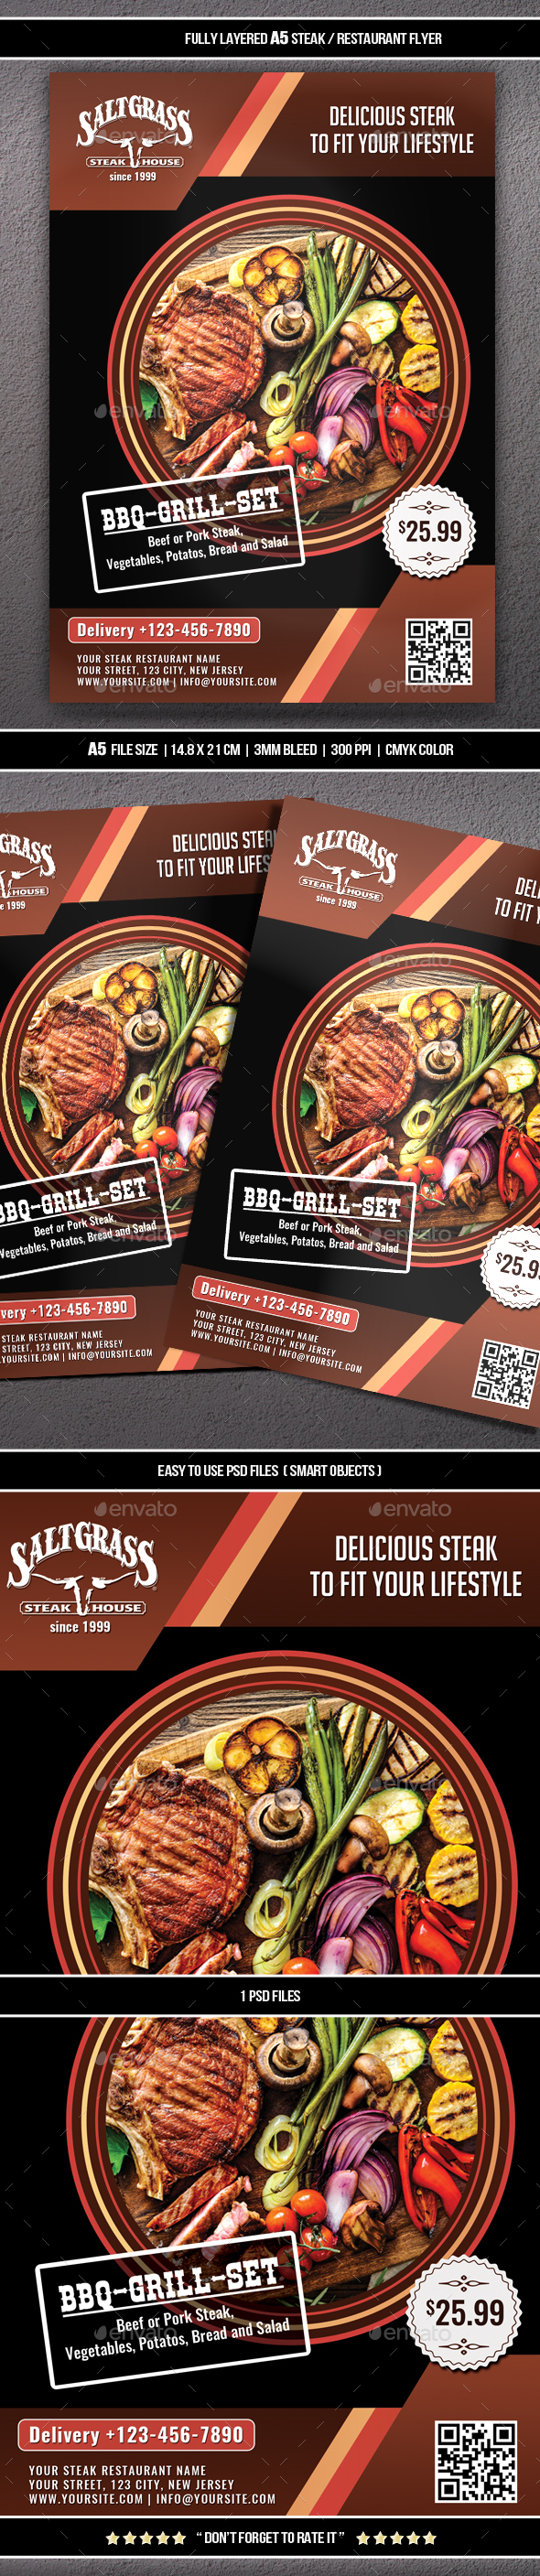 Steak / Restaurant Flyer (A5) - Restaurant Flyers